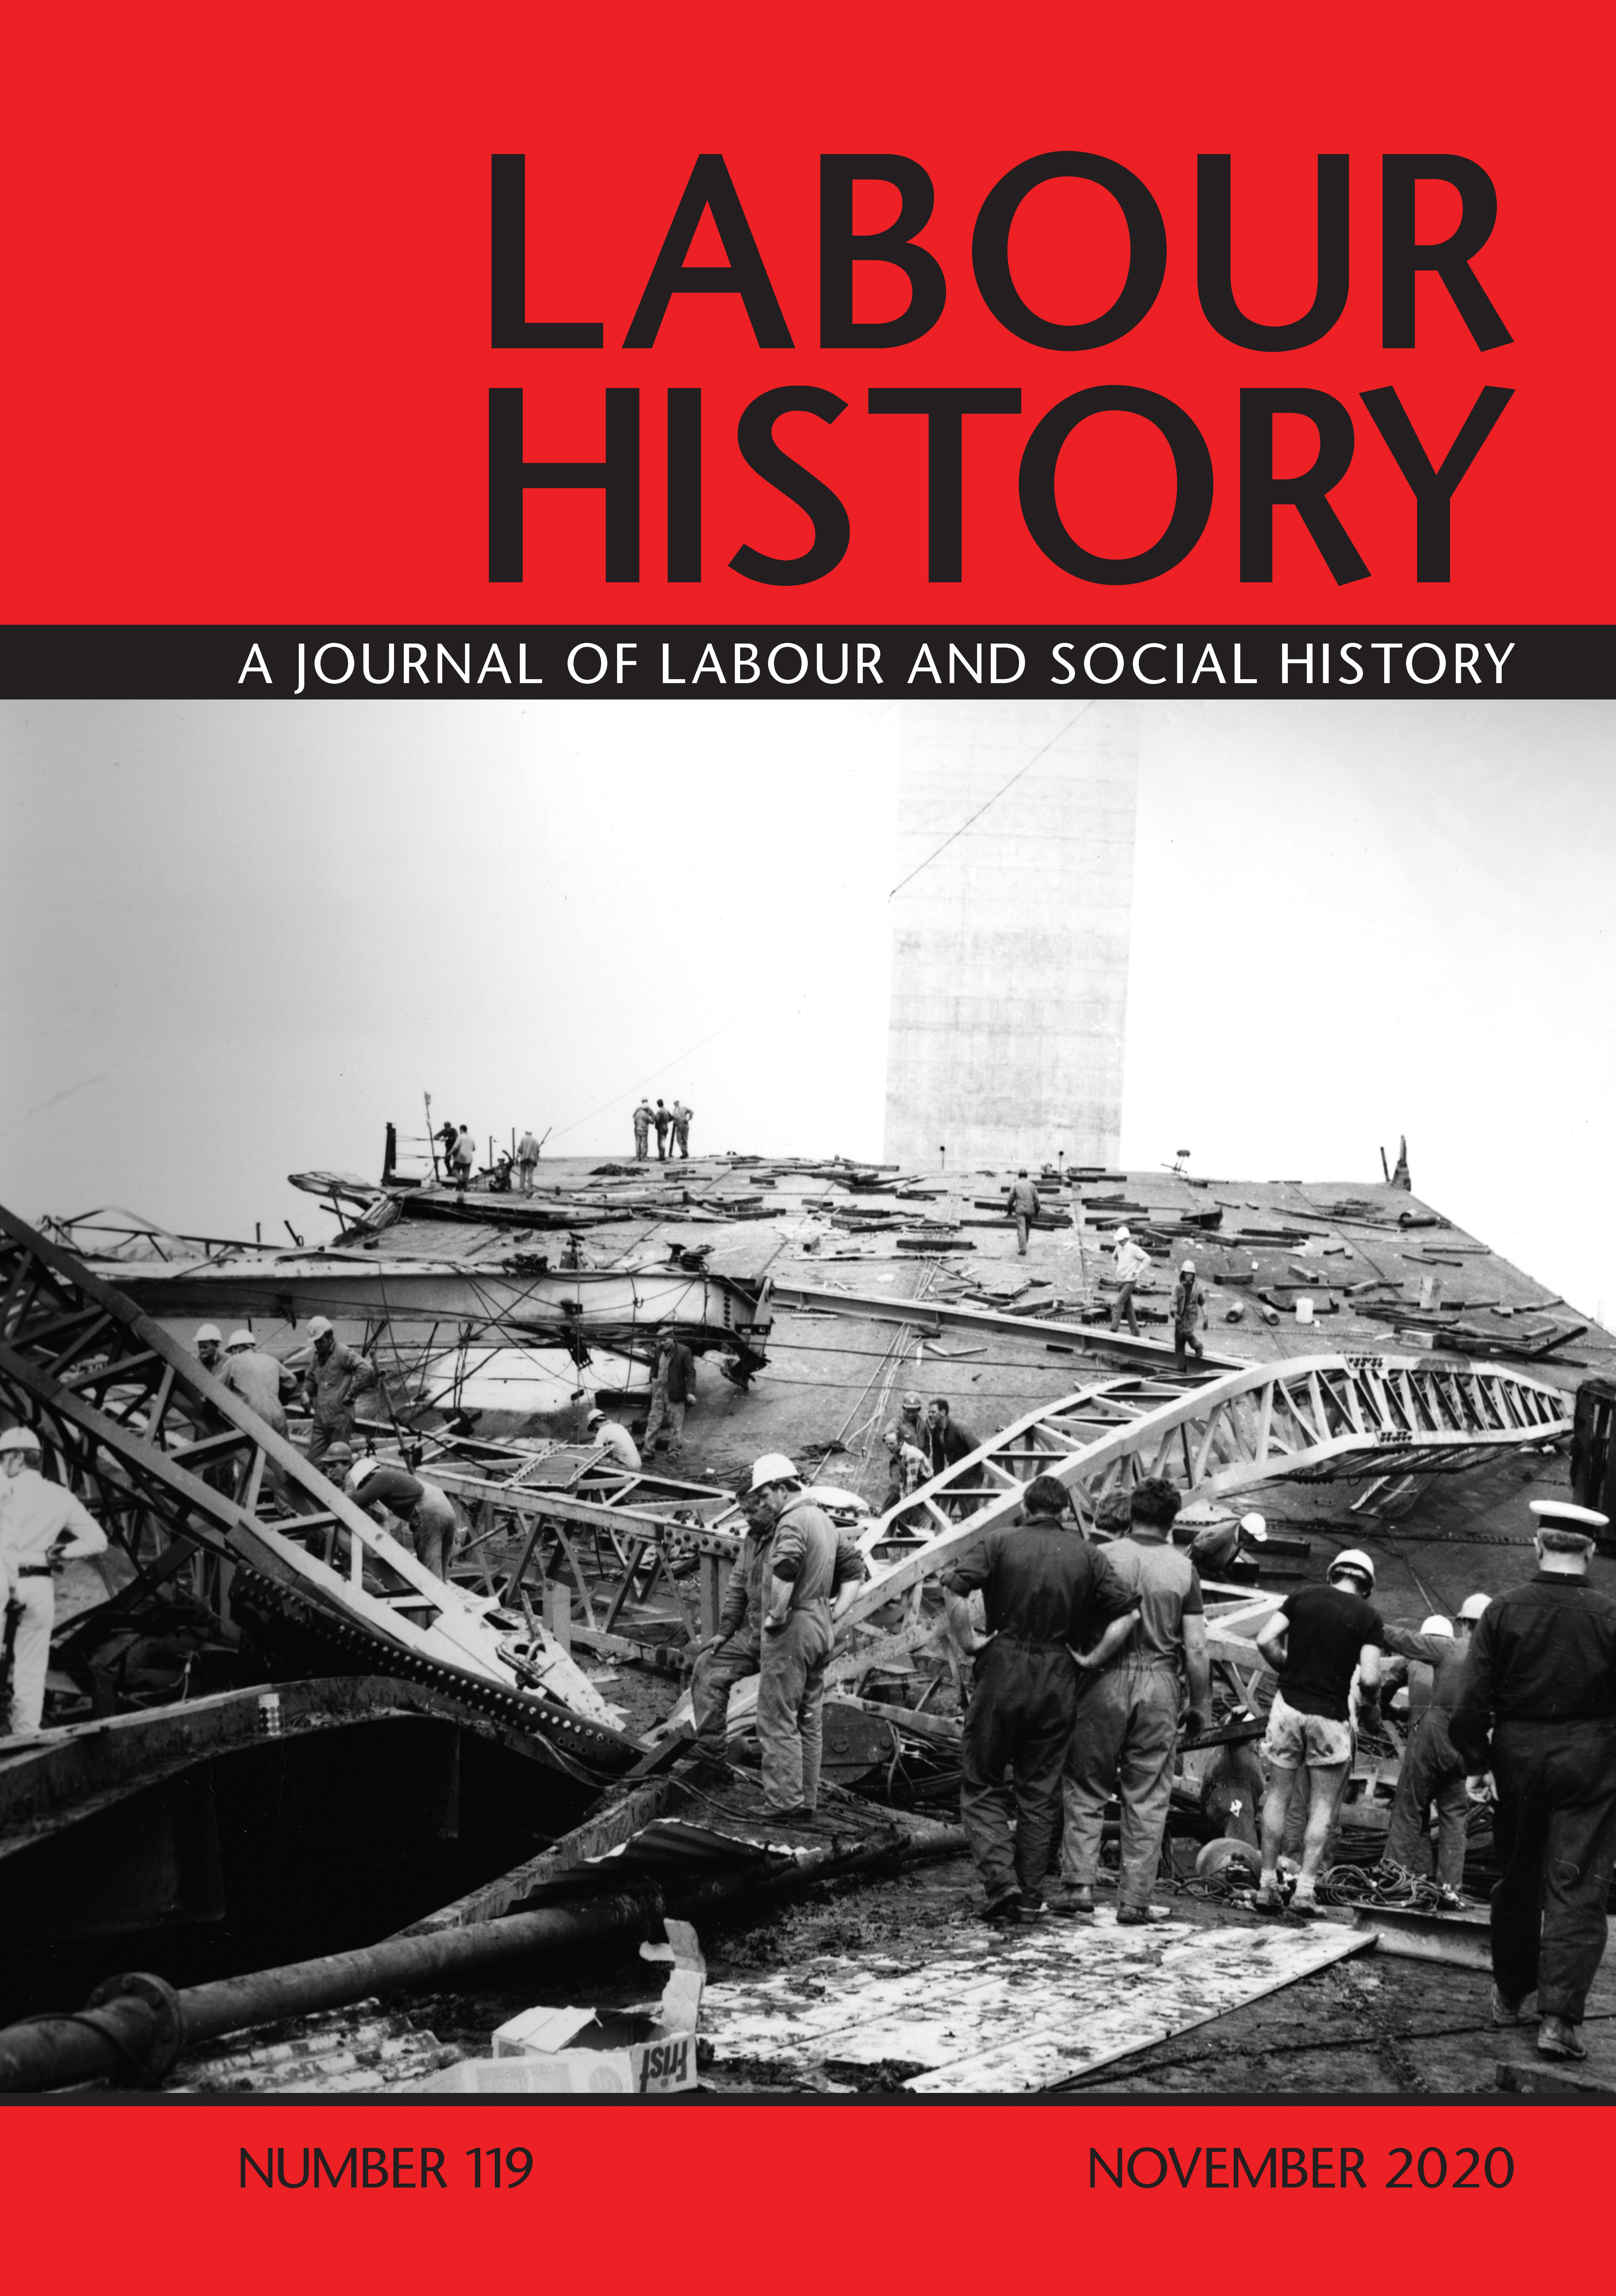 Labour History: A Journal of Labour and Social History: Volume 119, November 2020